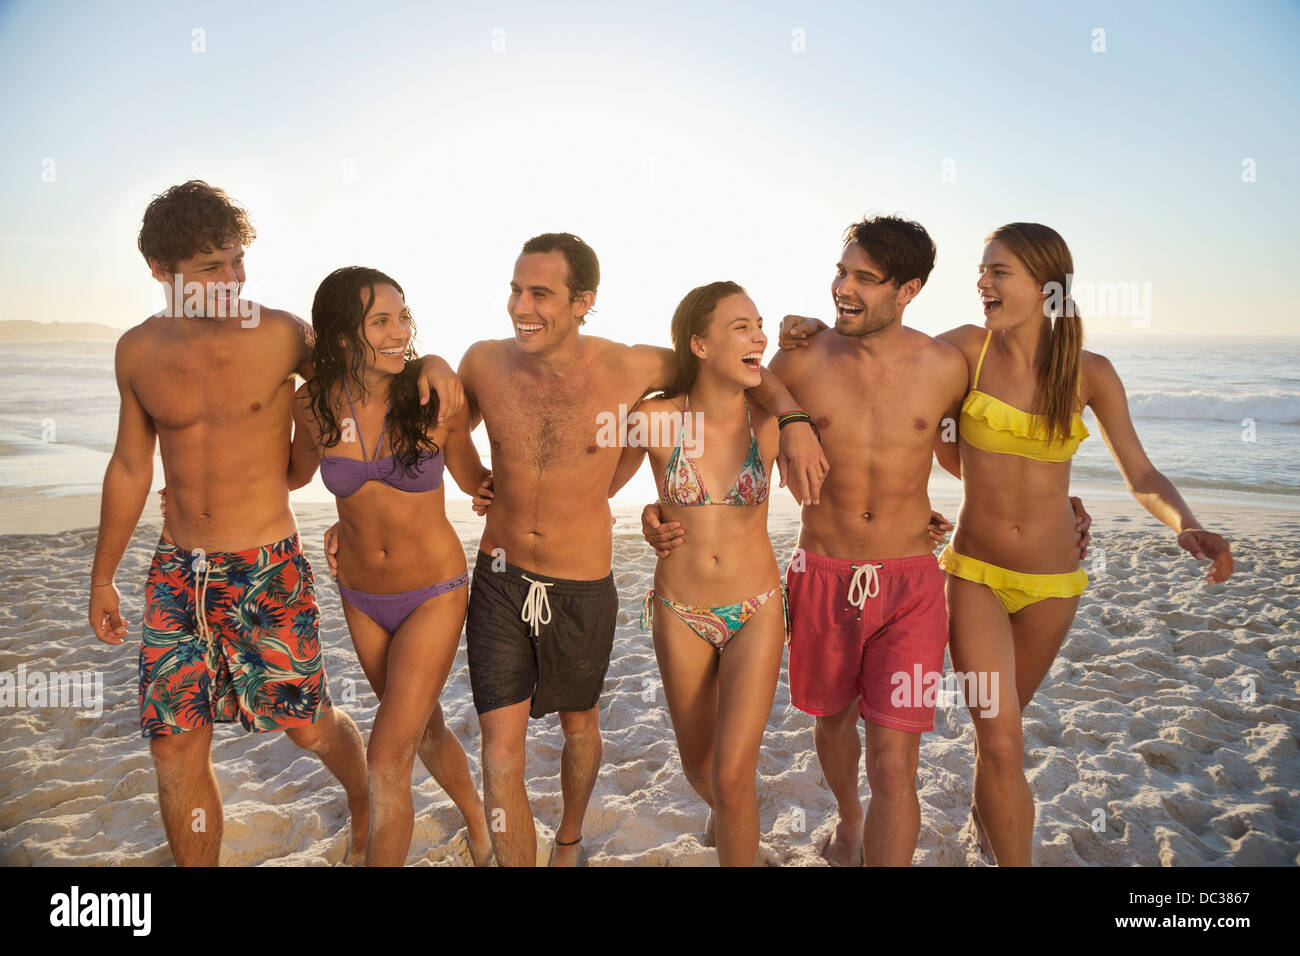 Beach fellows enjoyment